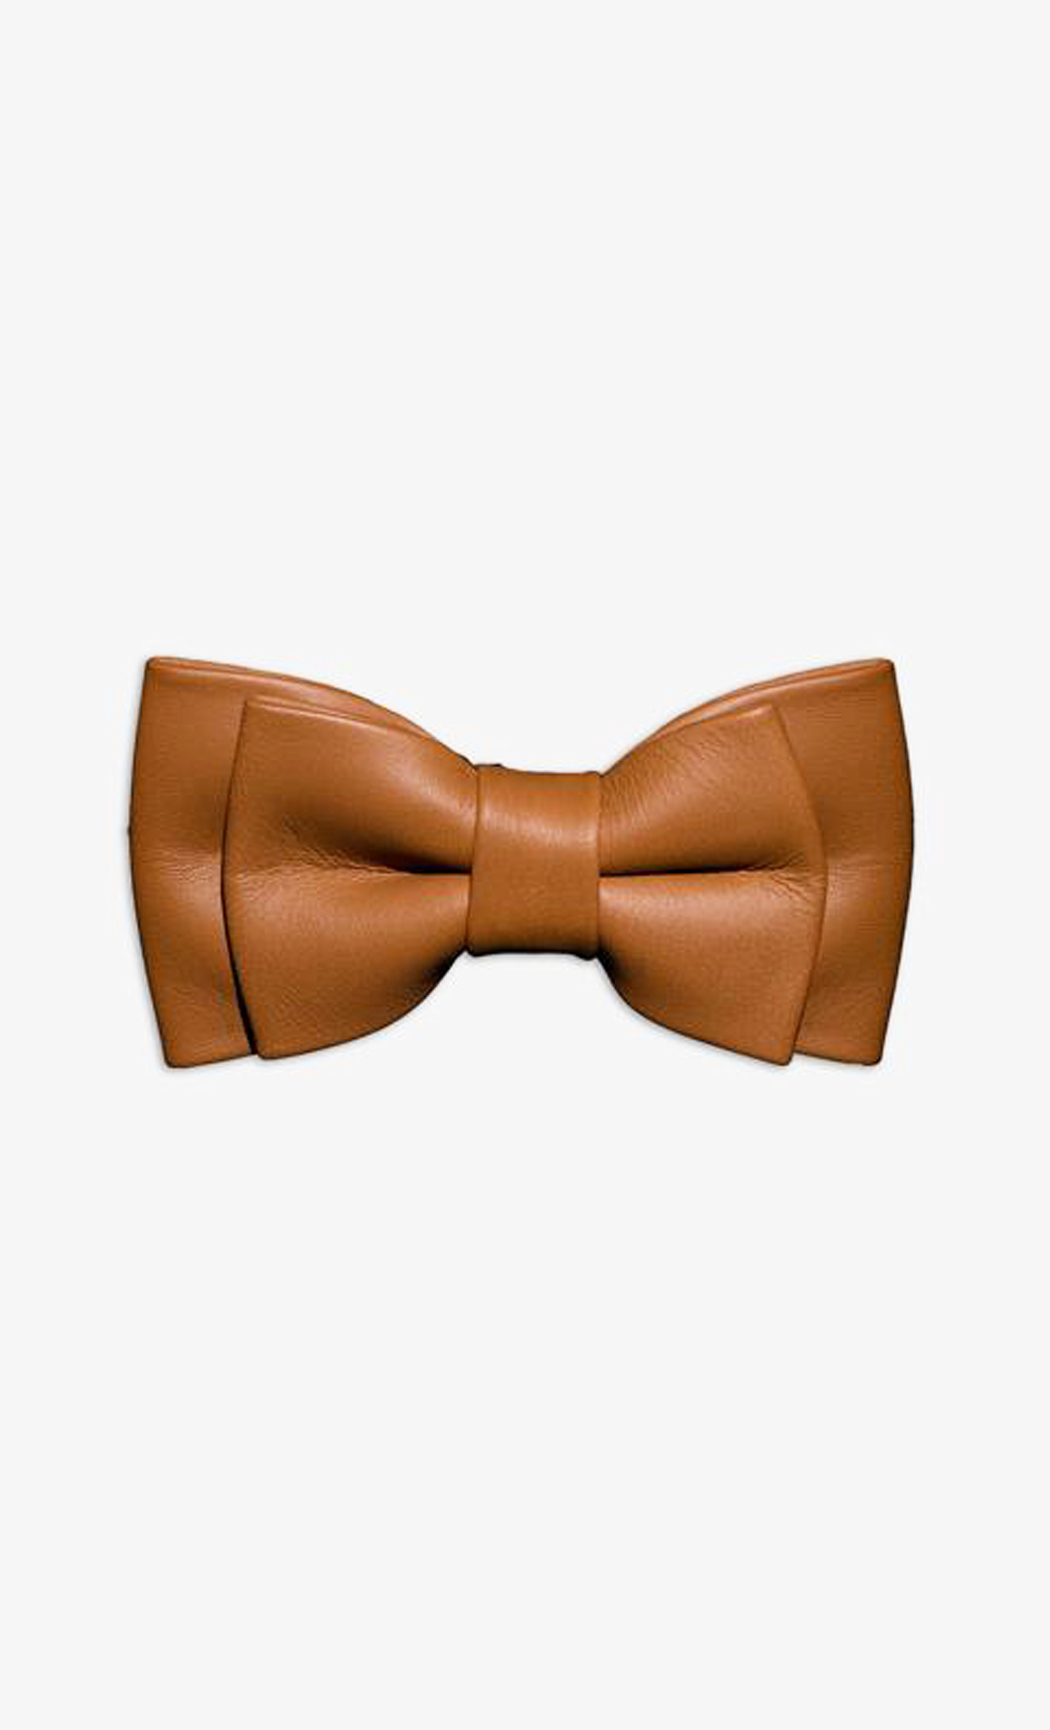 Light Brown Genuine Leather Twin Narrow Bow Tie. Buy Online